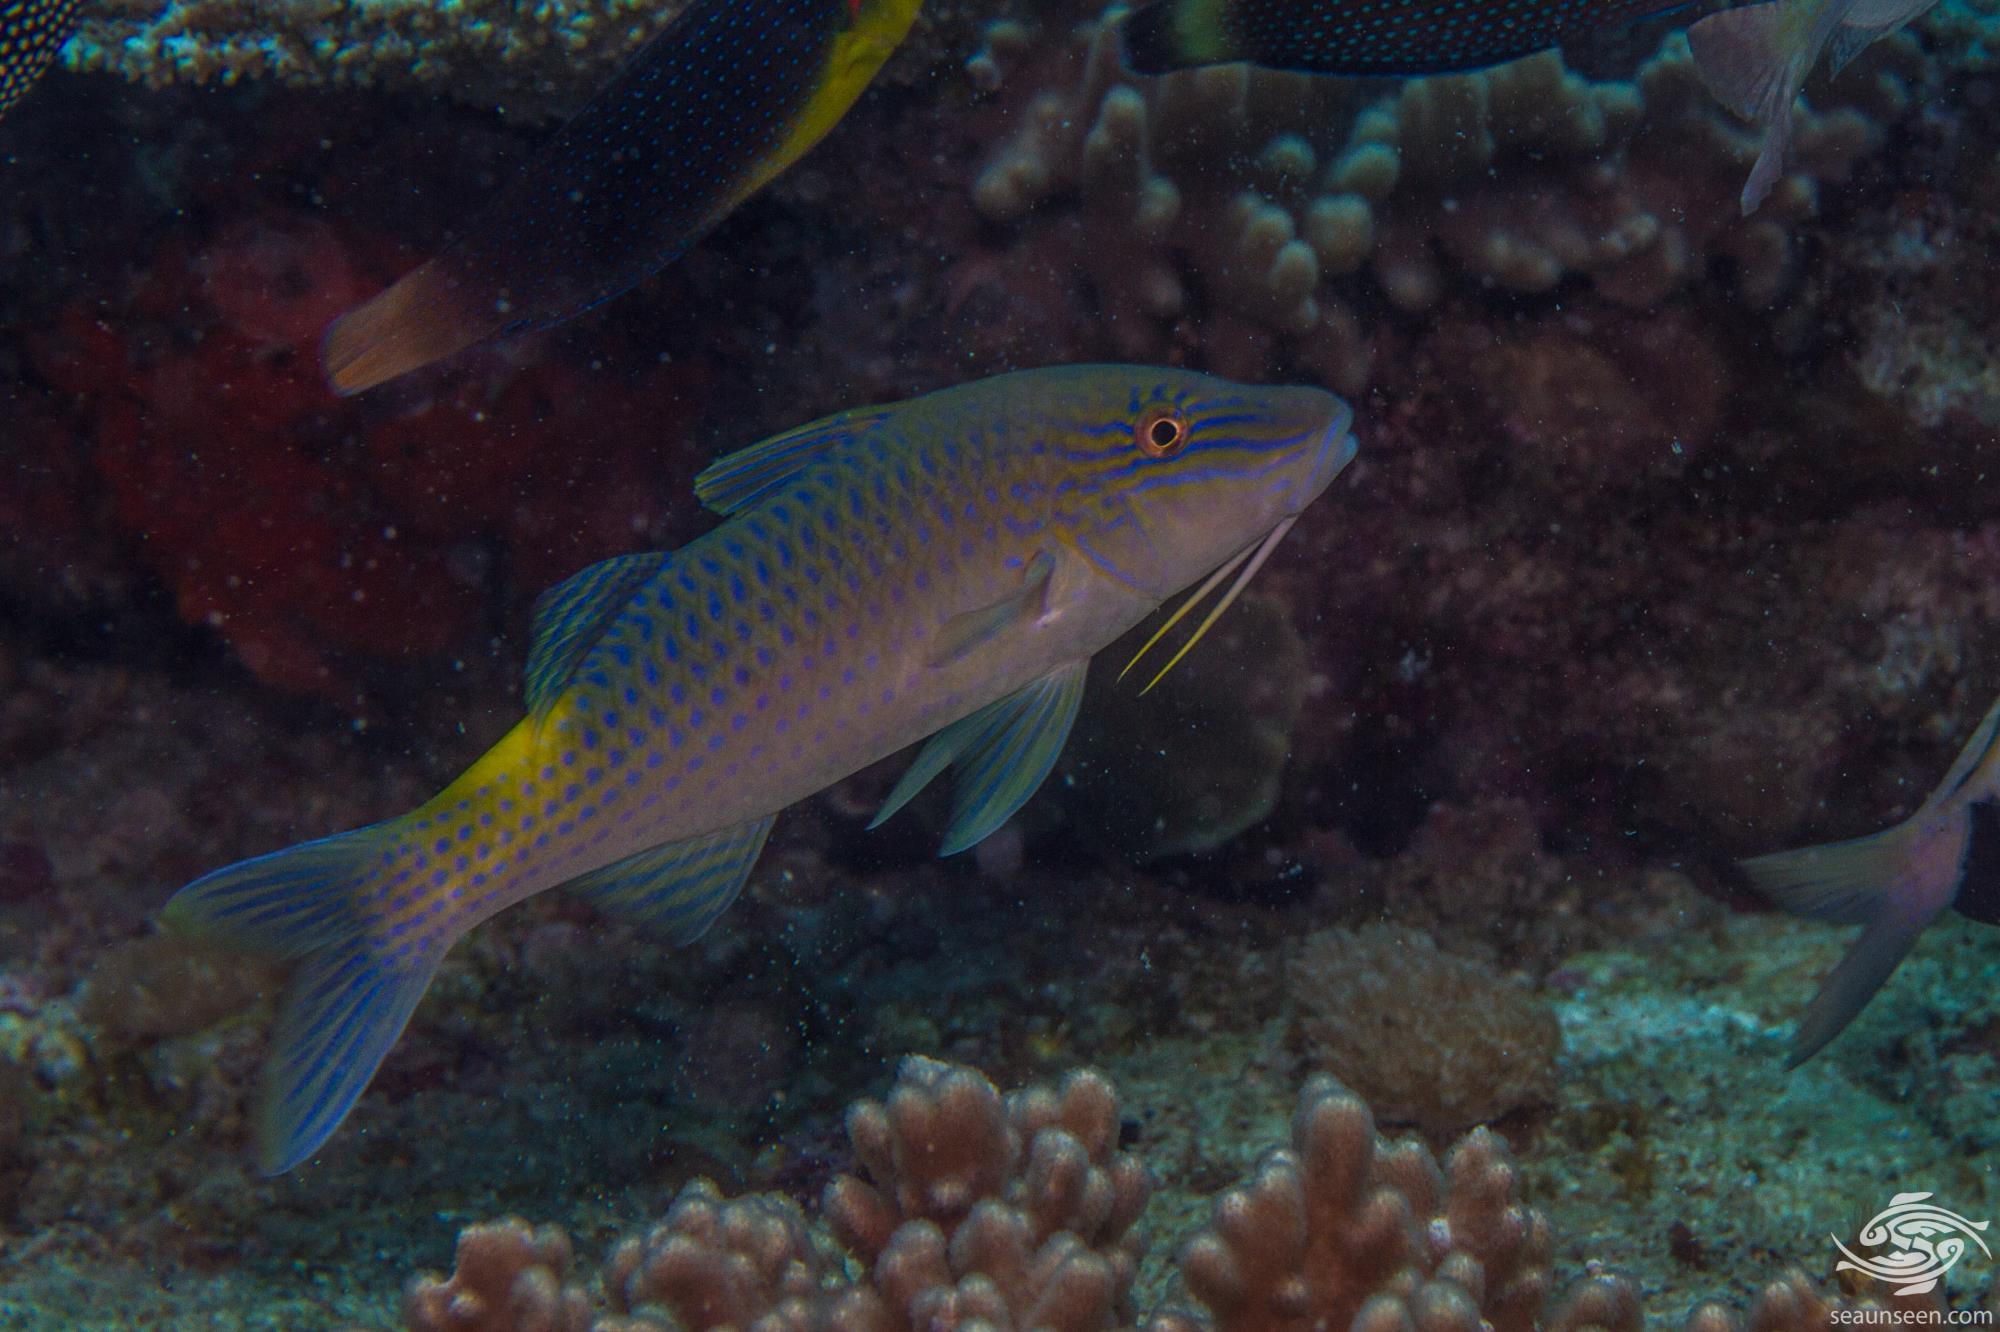 Goldsaddle Goatfish (Parupeneus cyclostomus) is also known as the Yellowsaddle goatfish